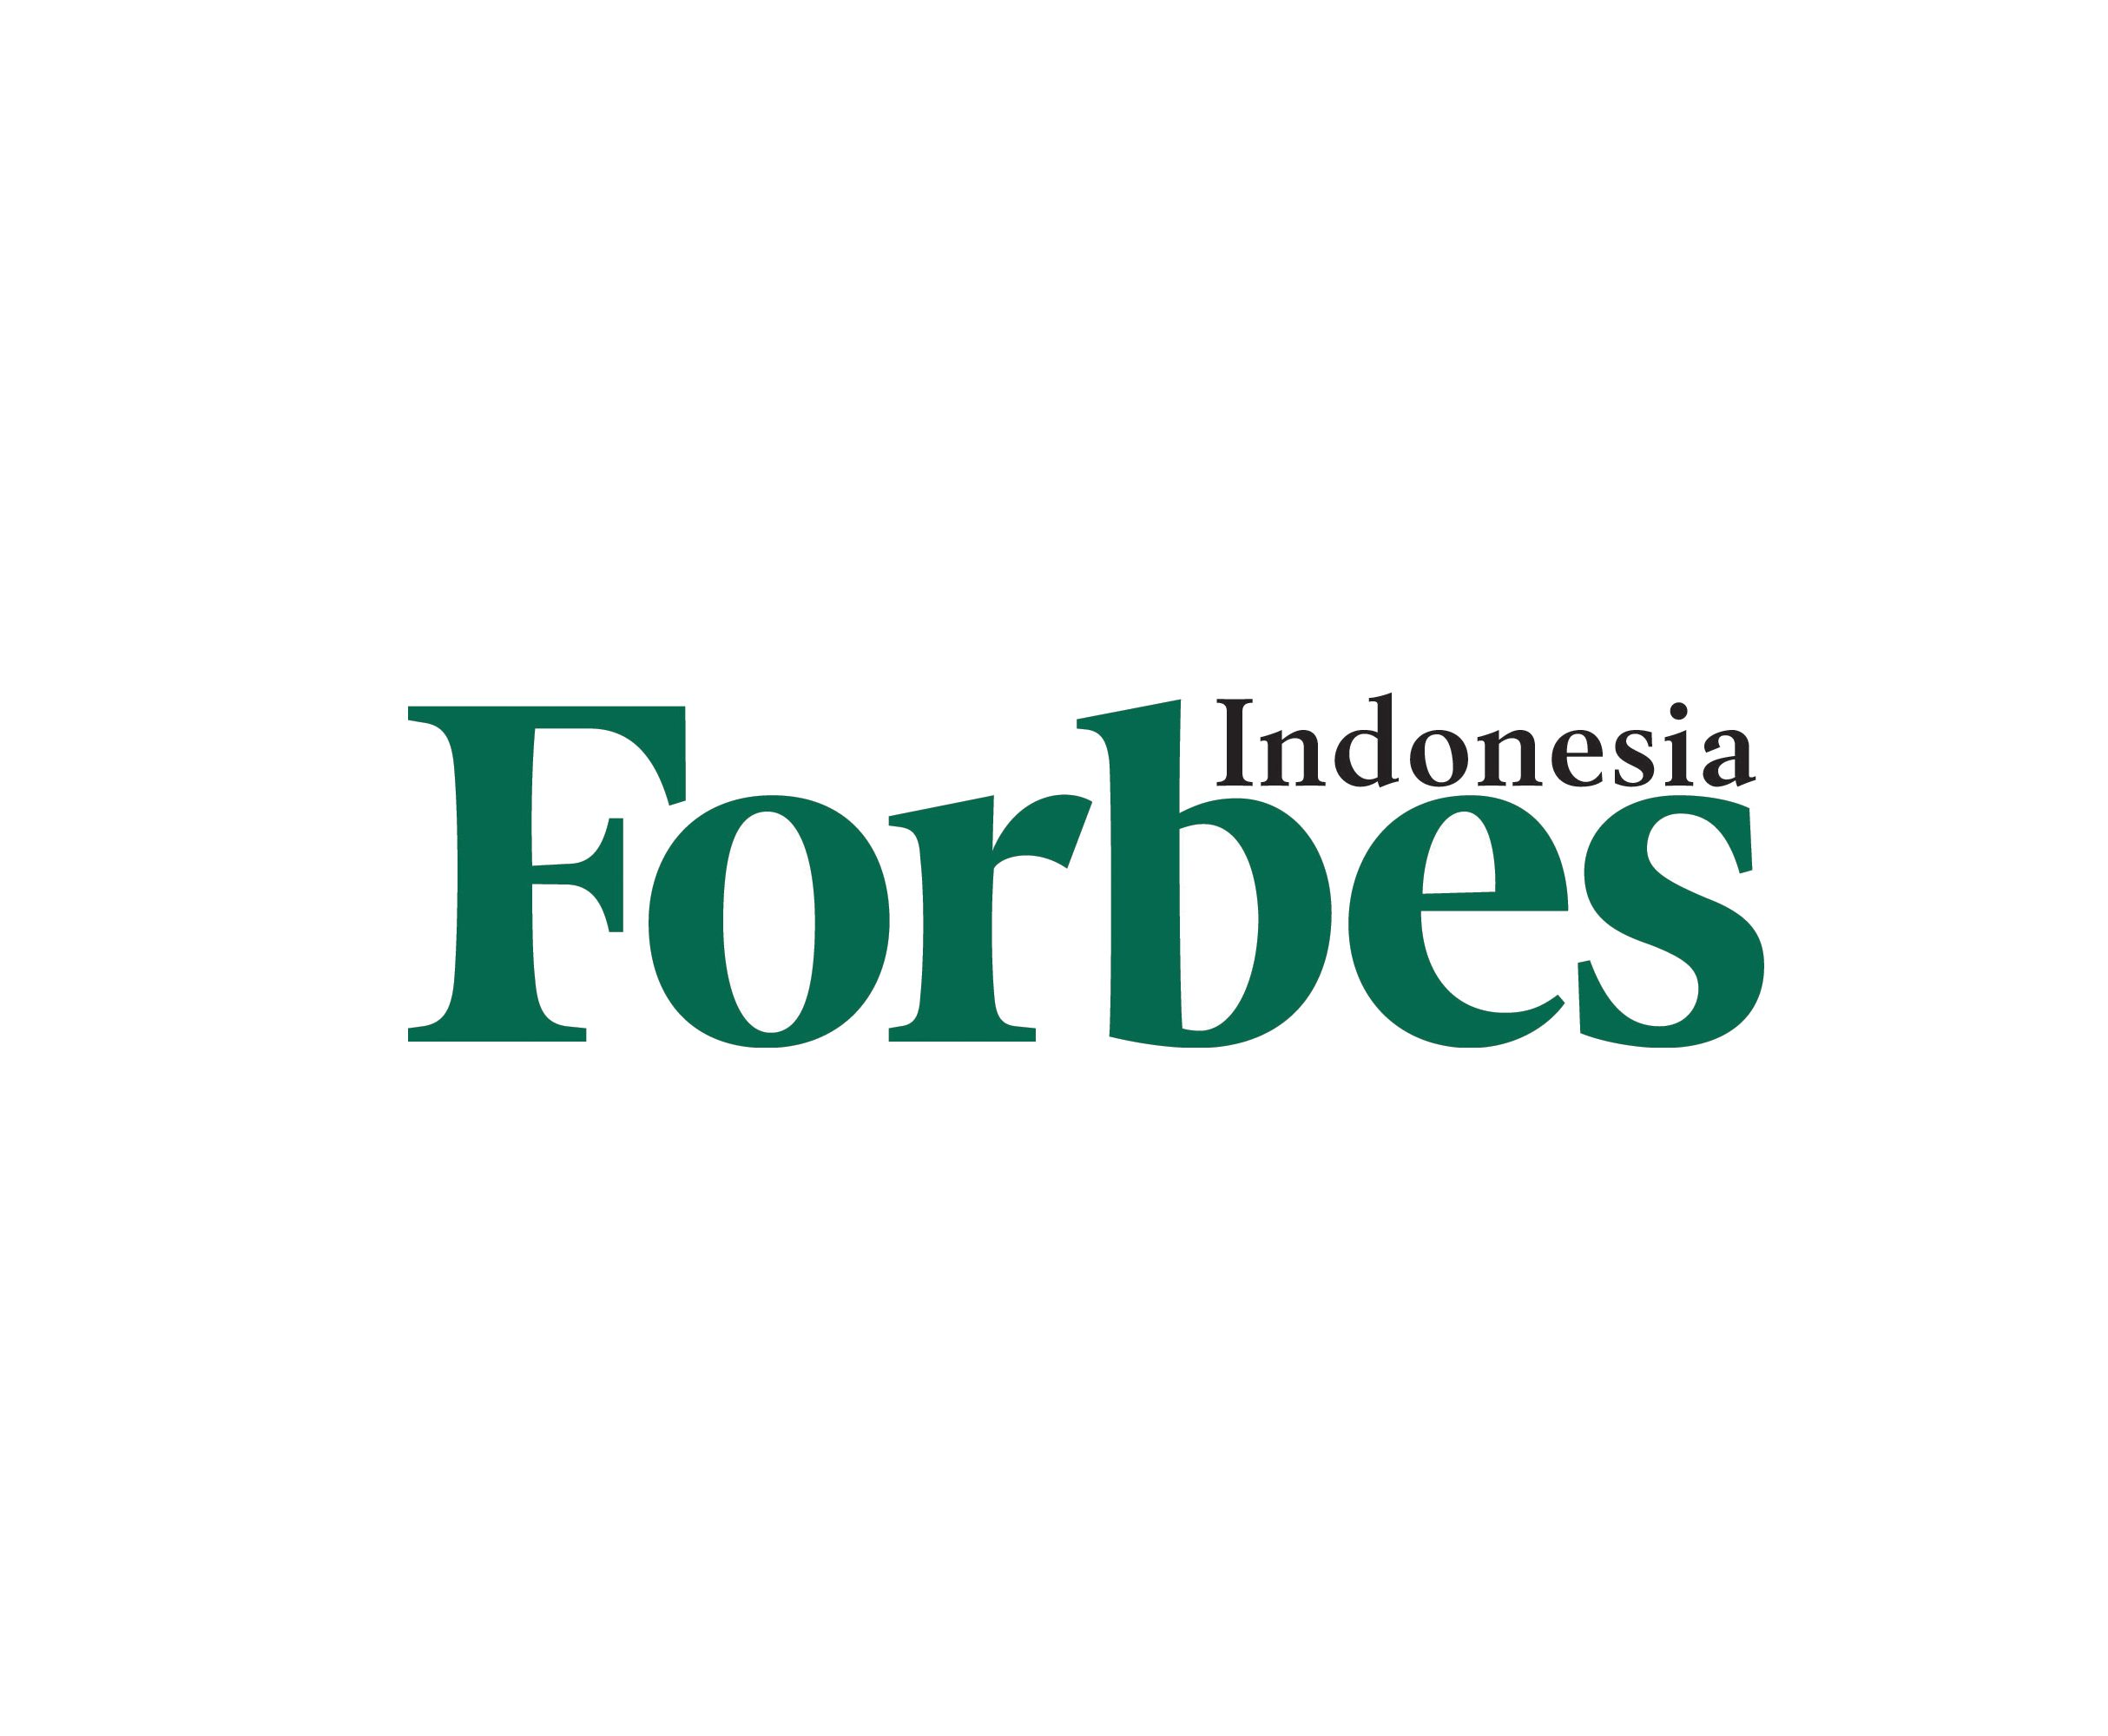 image of forbes indonesia